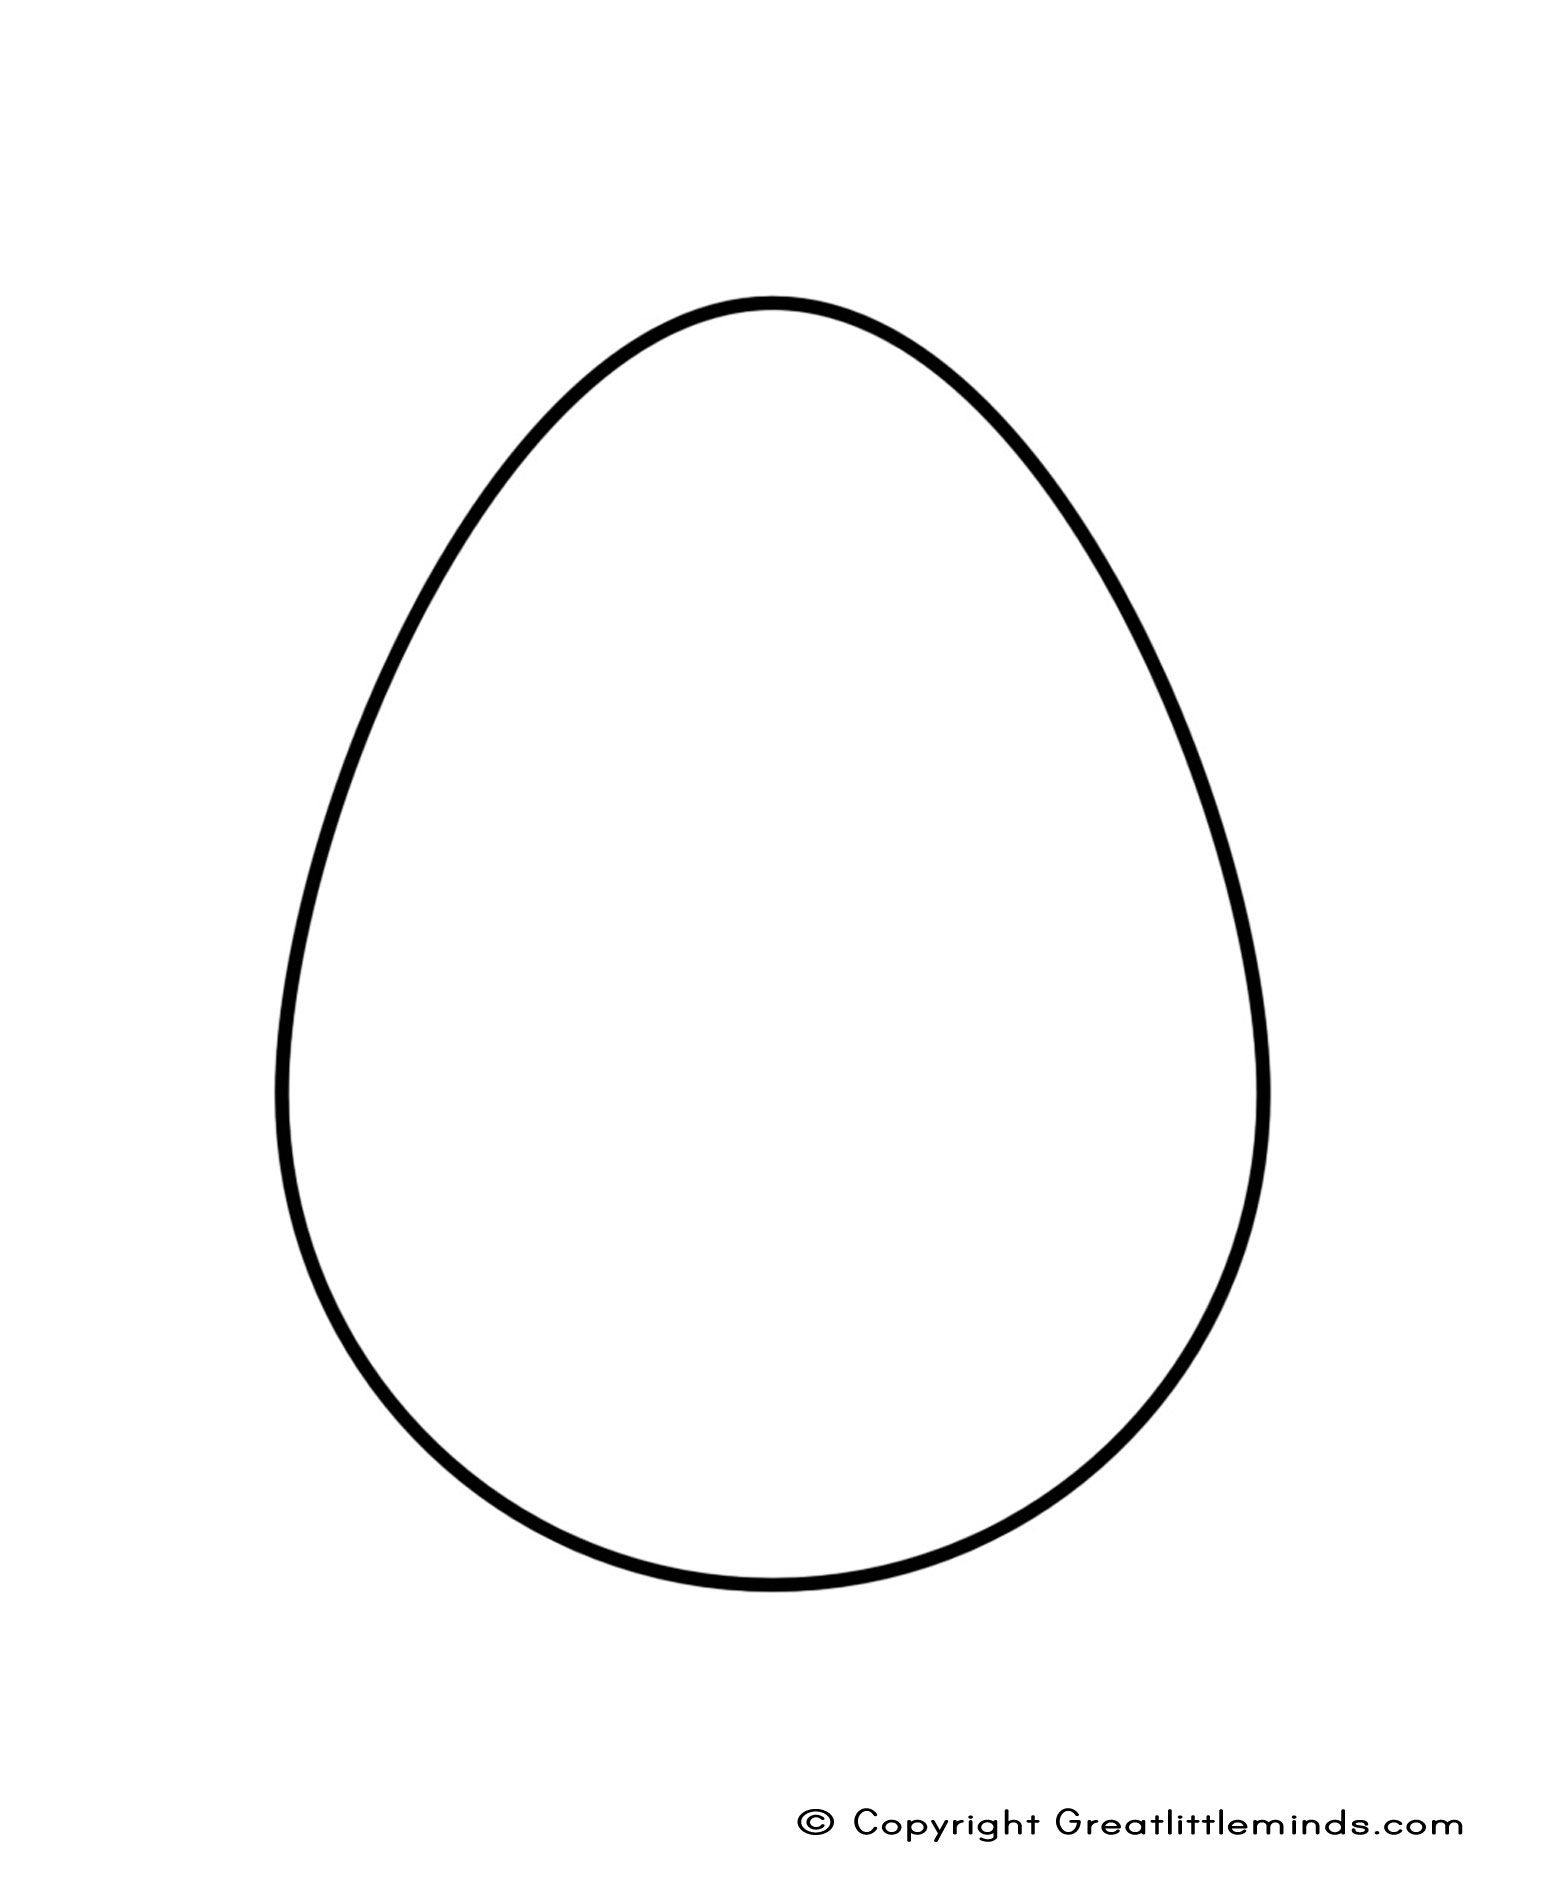 Plain Egg Templates - ClipArt Best svg free download